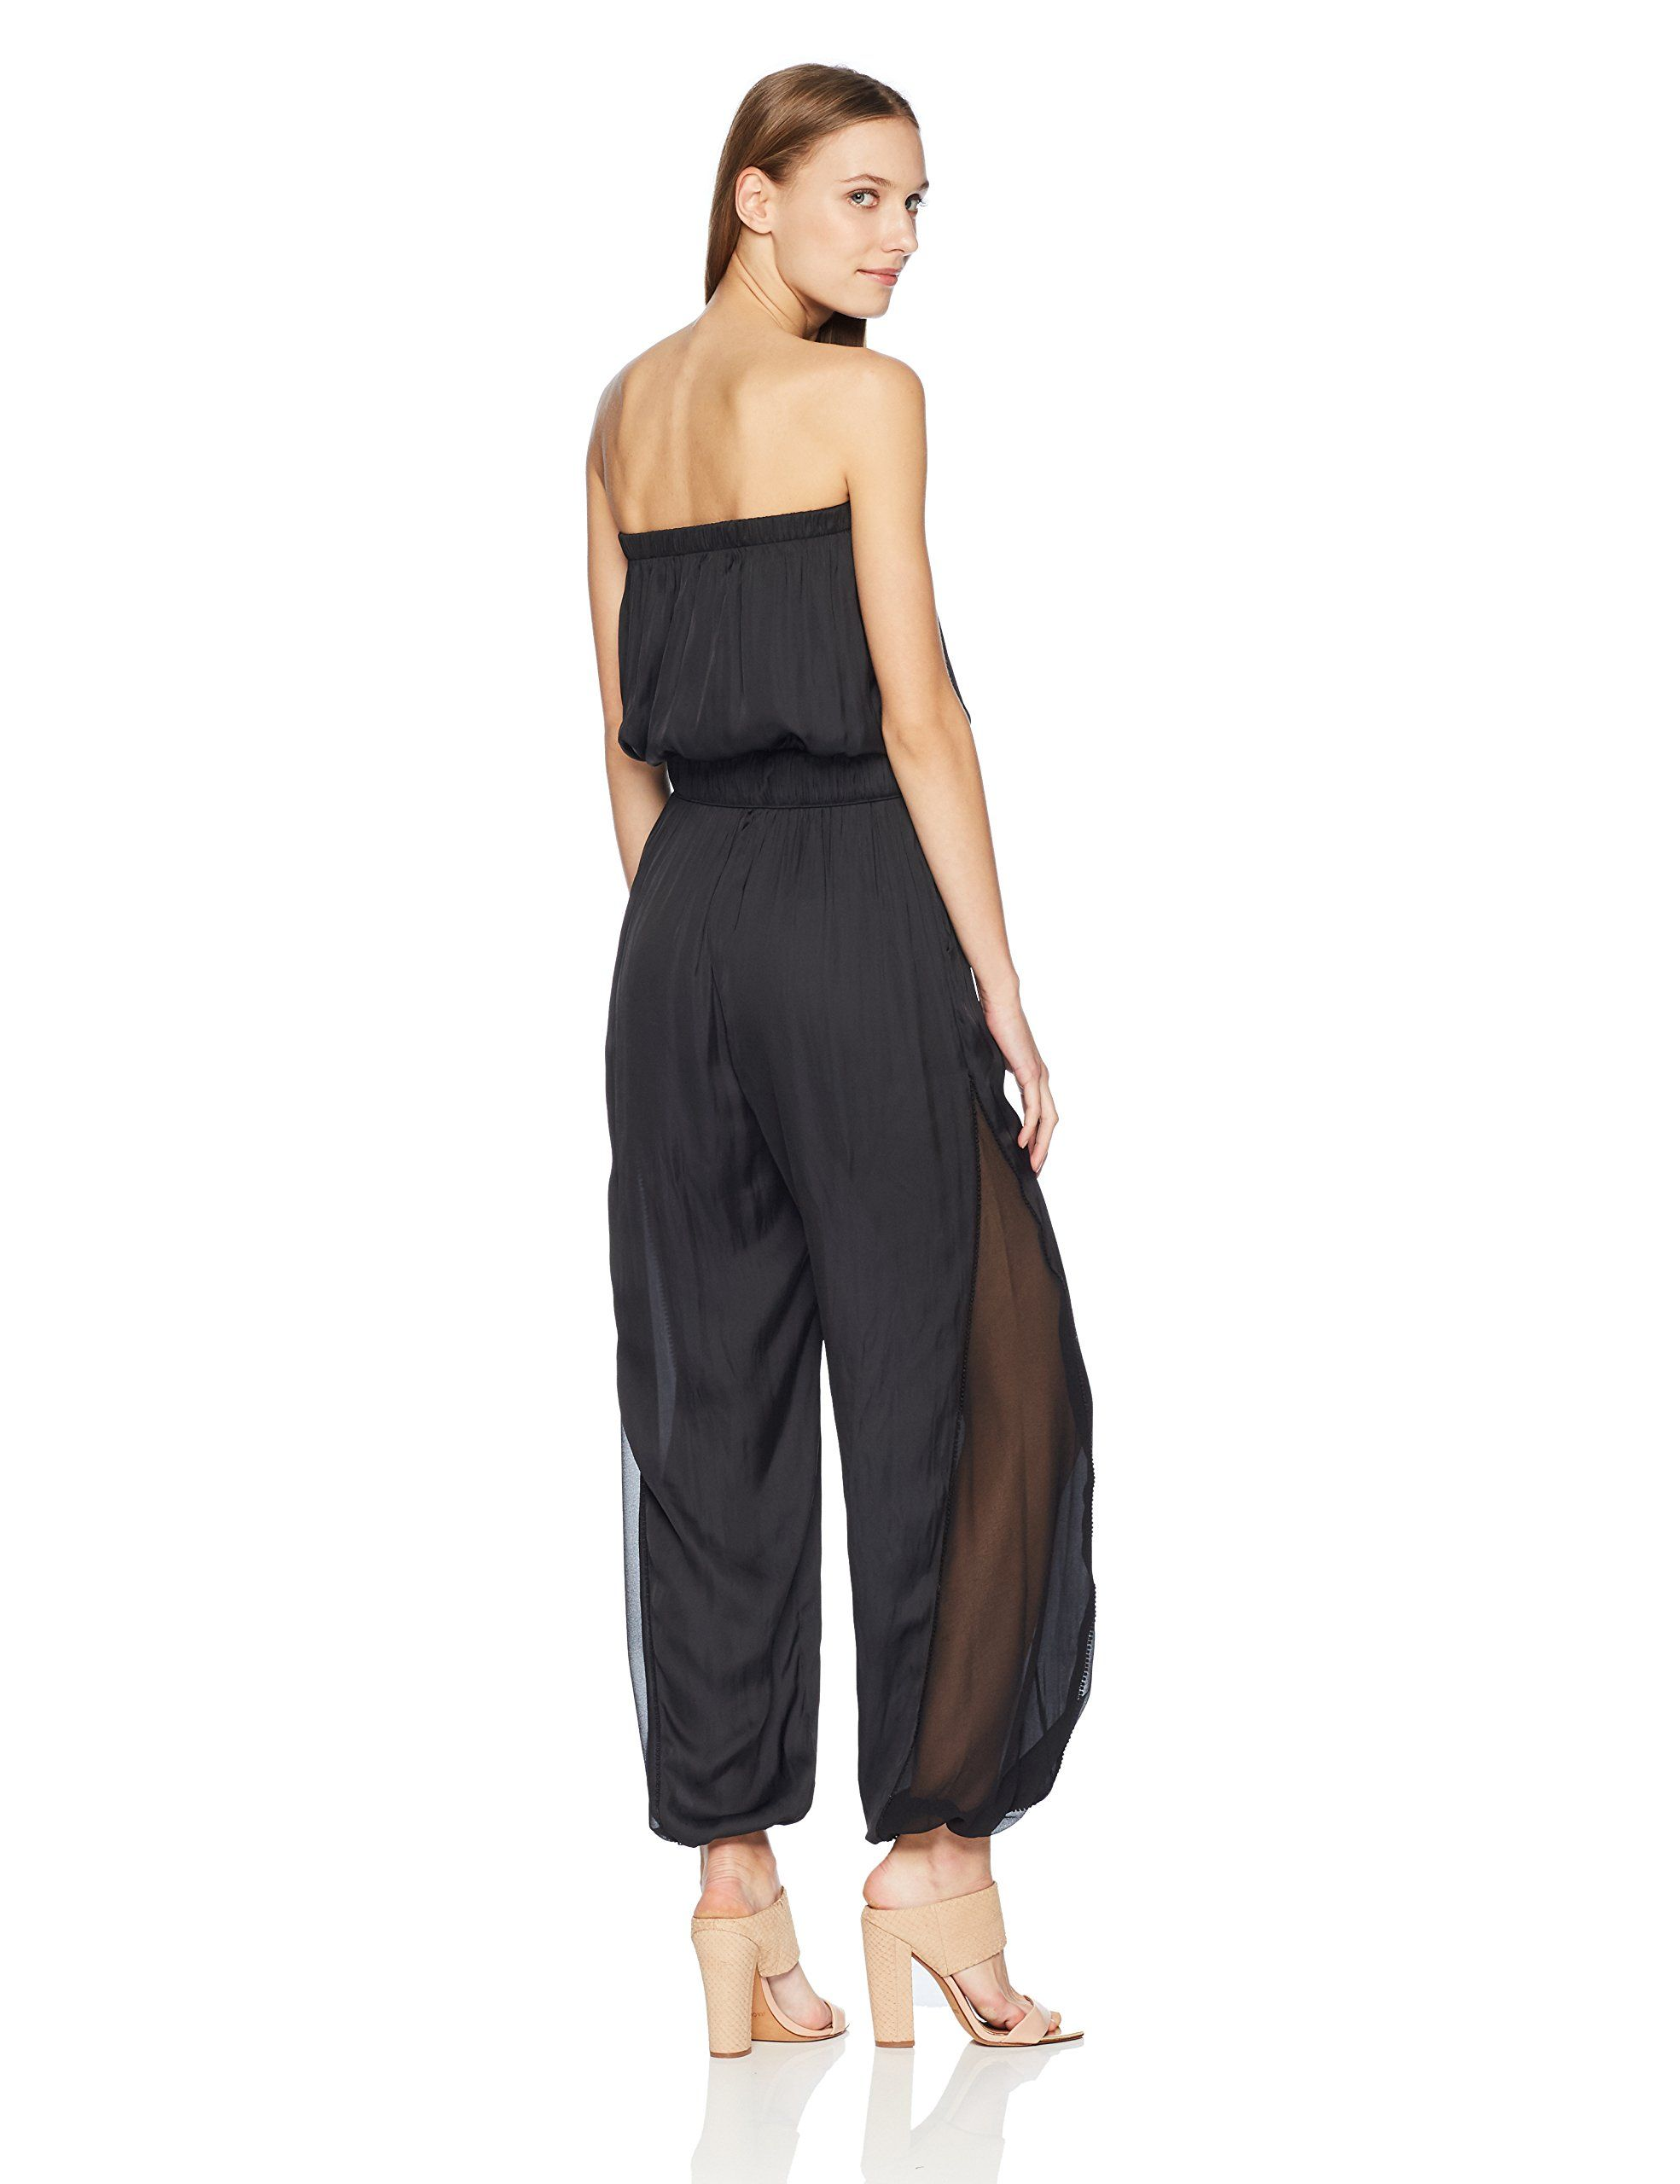 b675c4172a6 Halston Heritage Womens Strapless Ruched Jumpsuit Black Extra Large   Learn  much more by seeing the